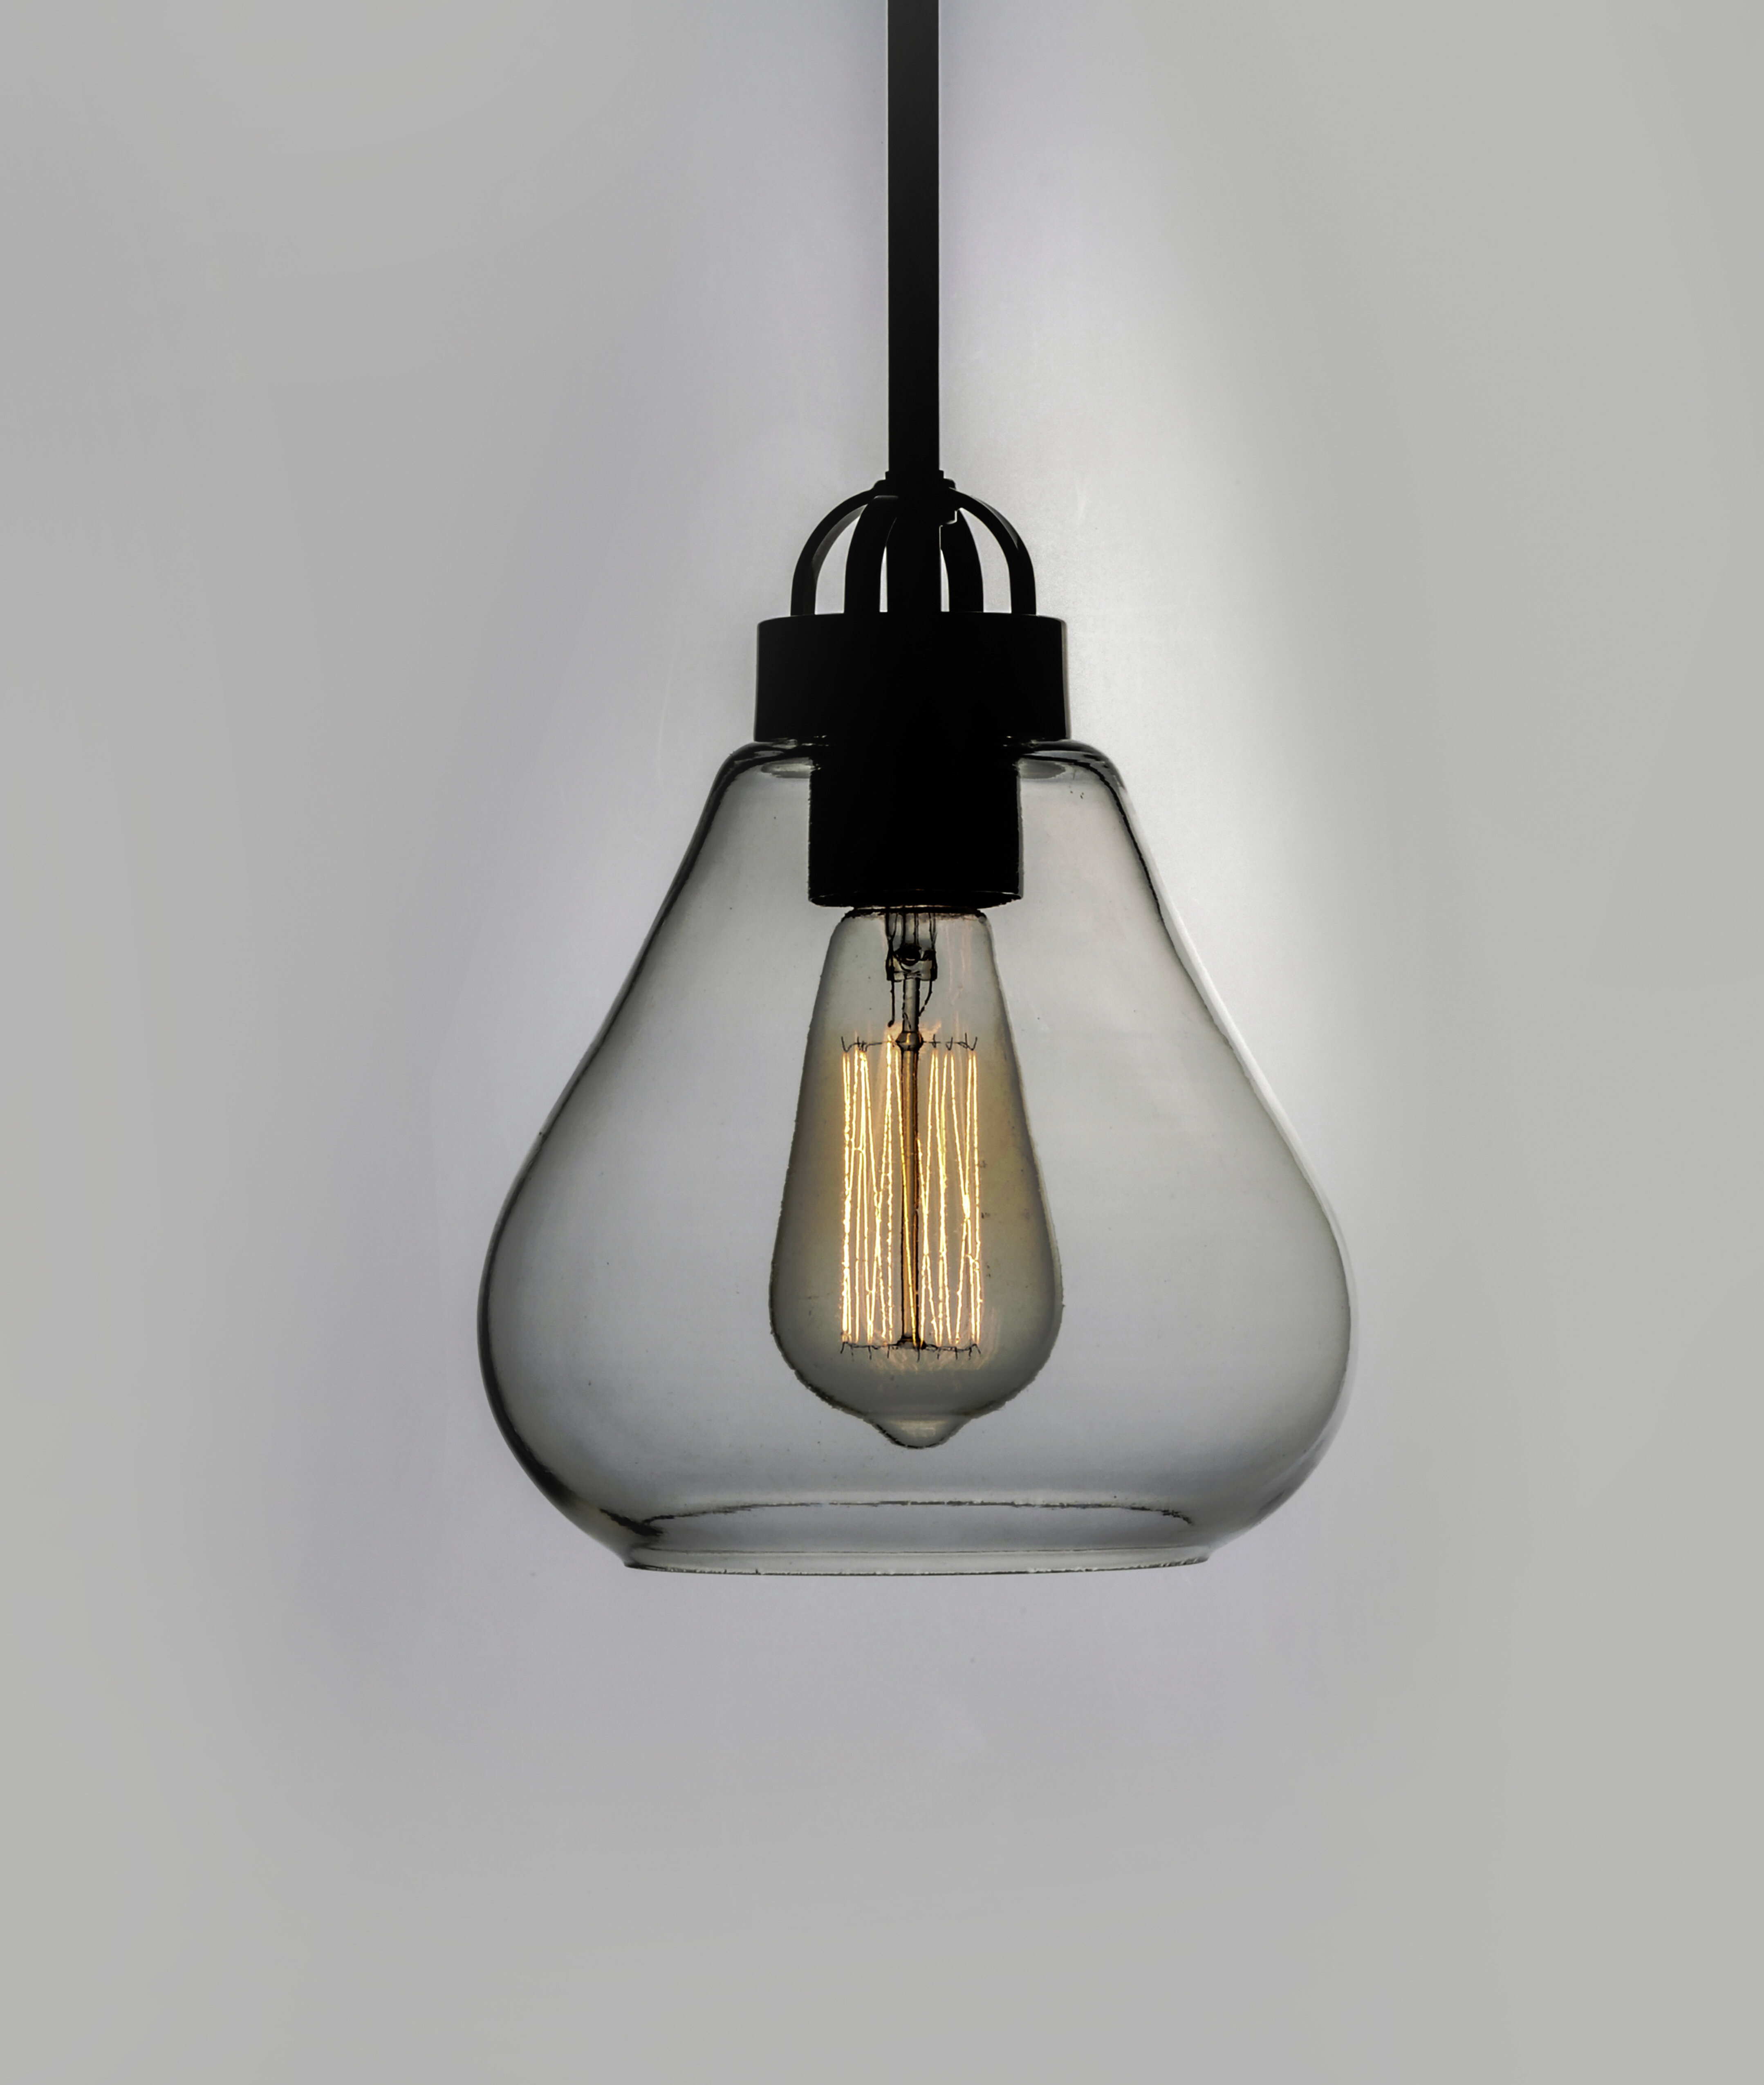 Pewter & Silver & Satin Nickel Pendant Lighting You'll Love With Kimsey 1 Light Teardrop Pendants (View 5 of 30)